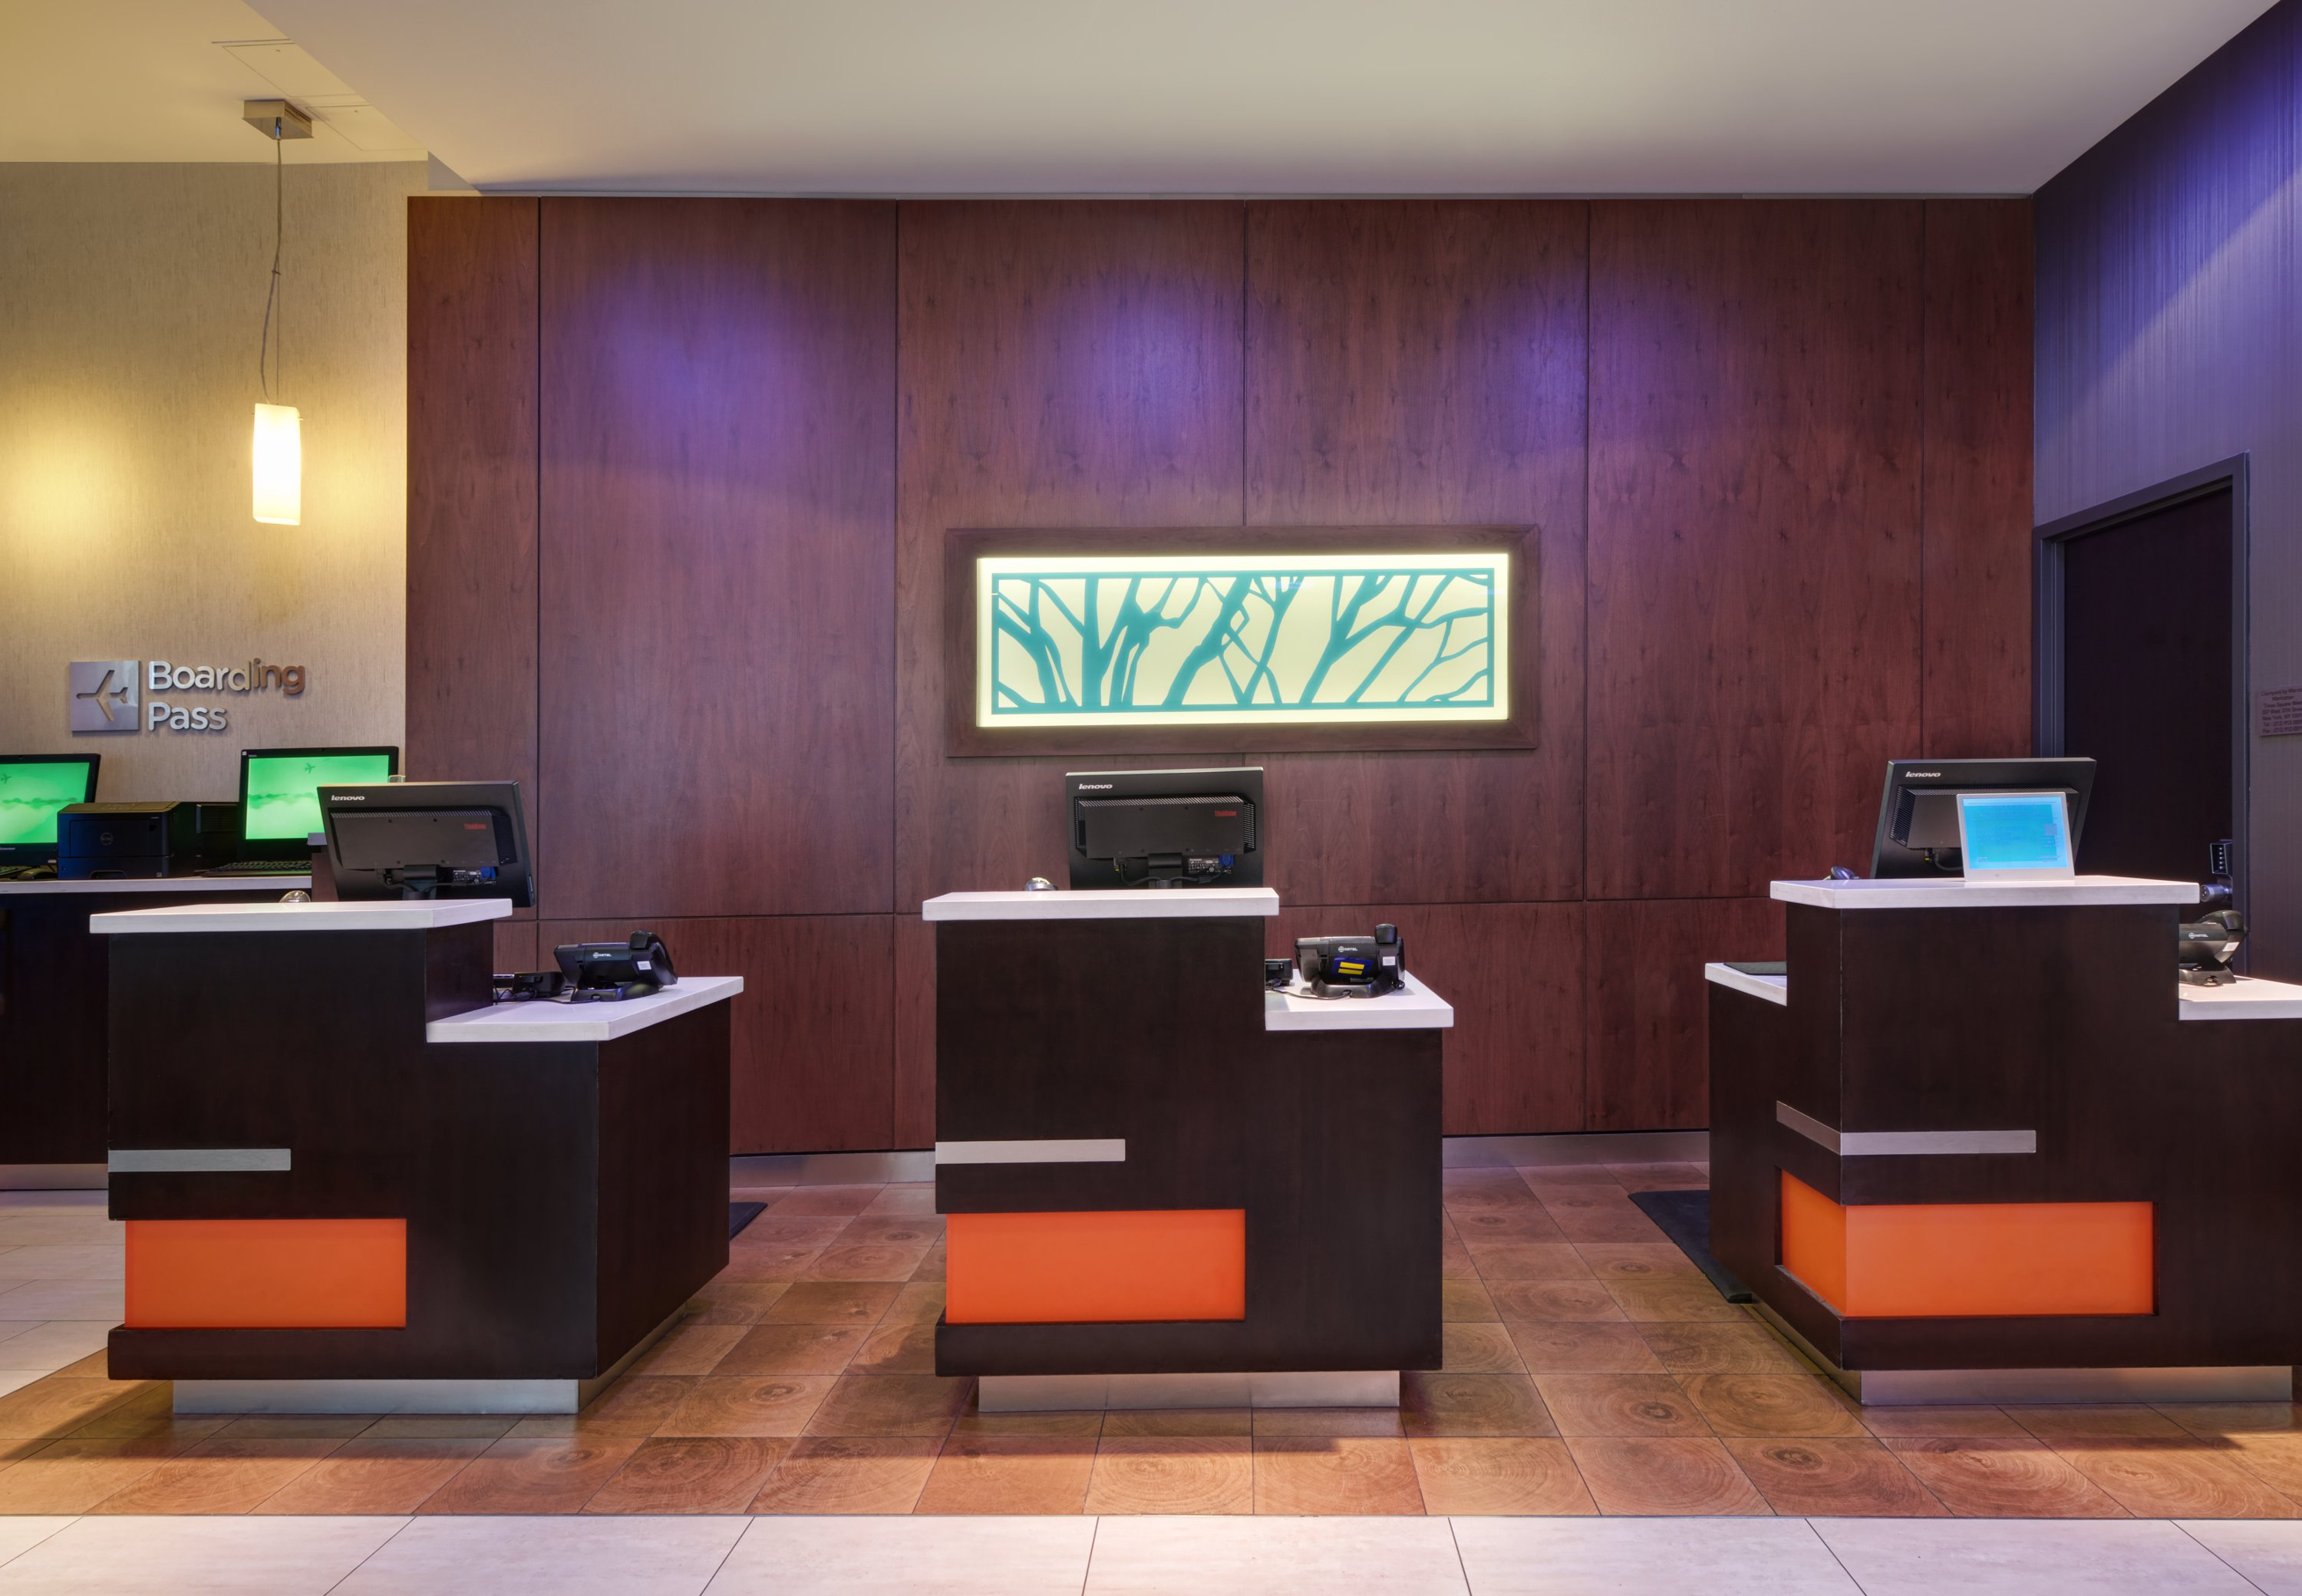 Courtyard by Marriott New York Manhattan/Times Square West image 10